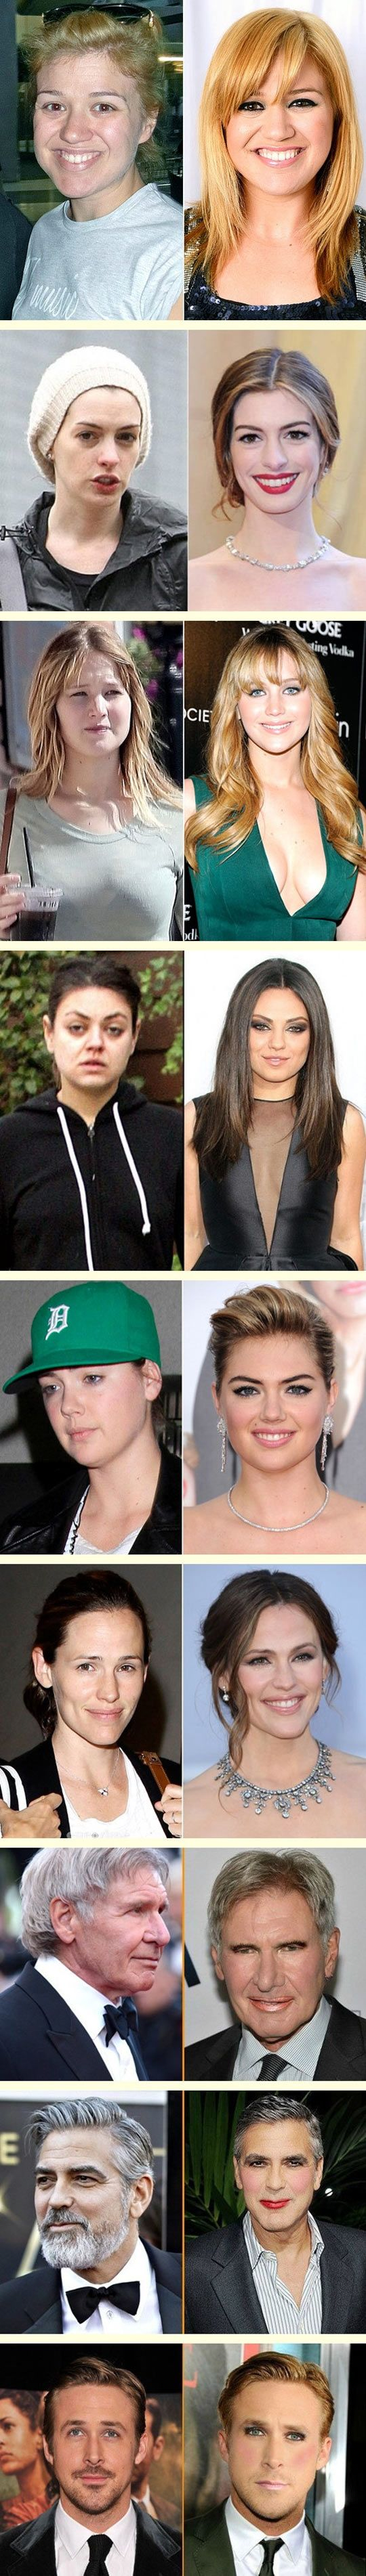 Makeup Makes A Big Difference: